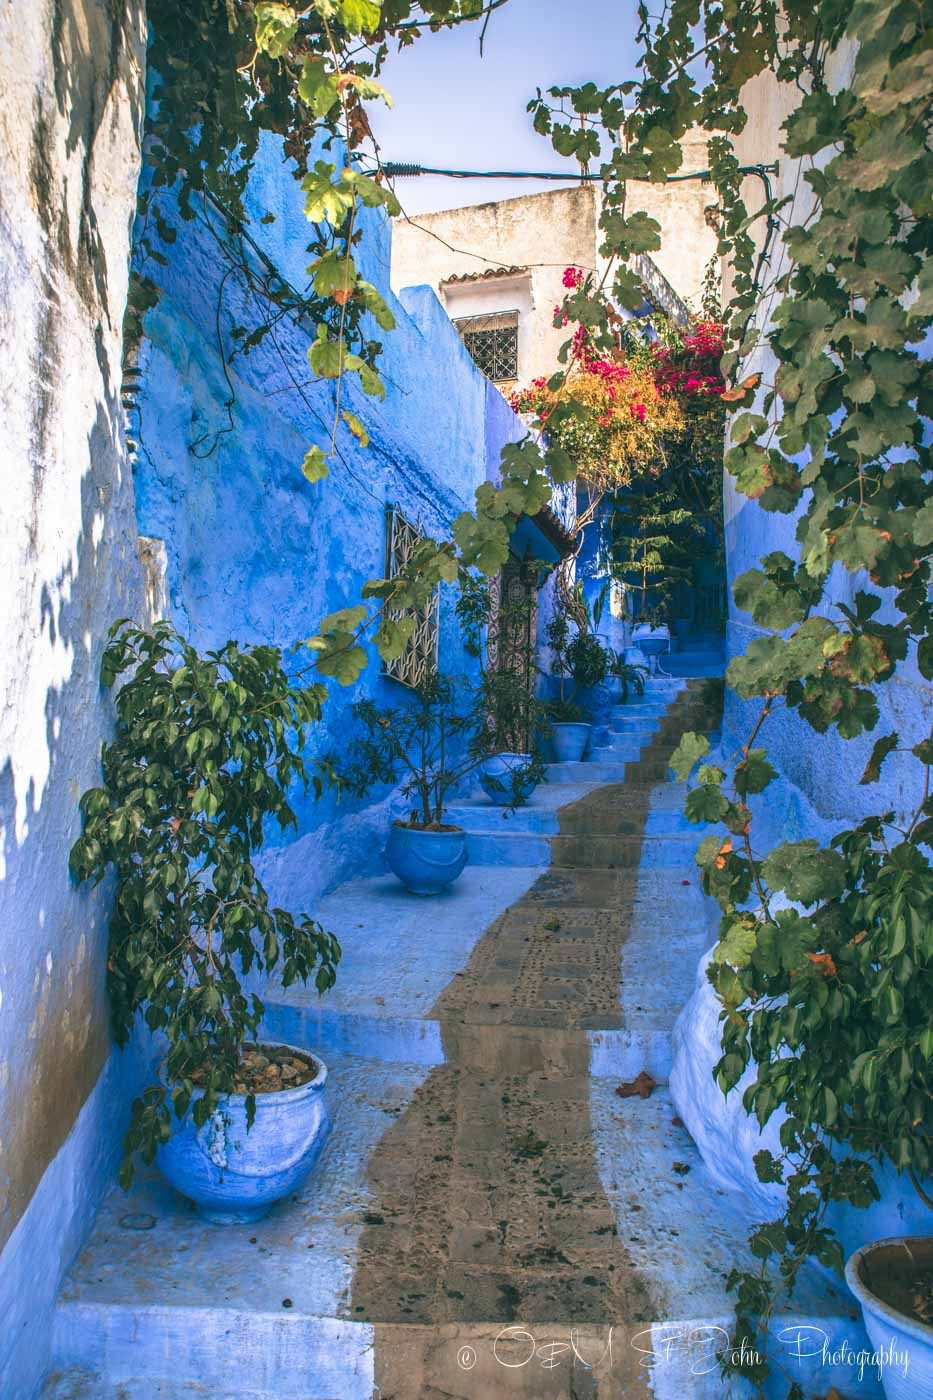 Visiting Morocco's Famous Blue City of Chefchaouen Visit